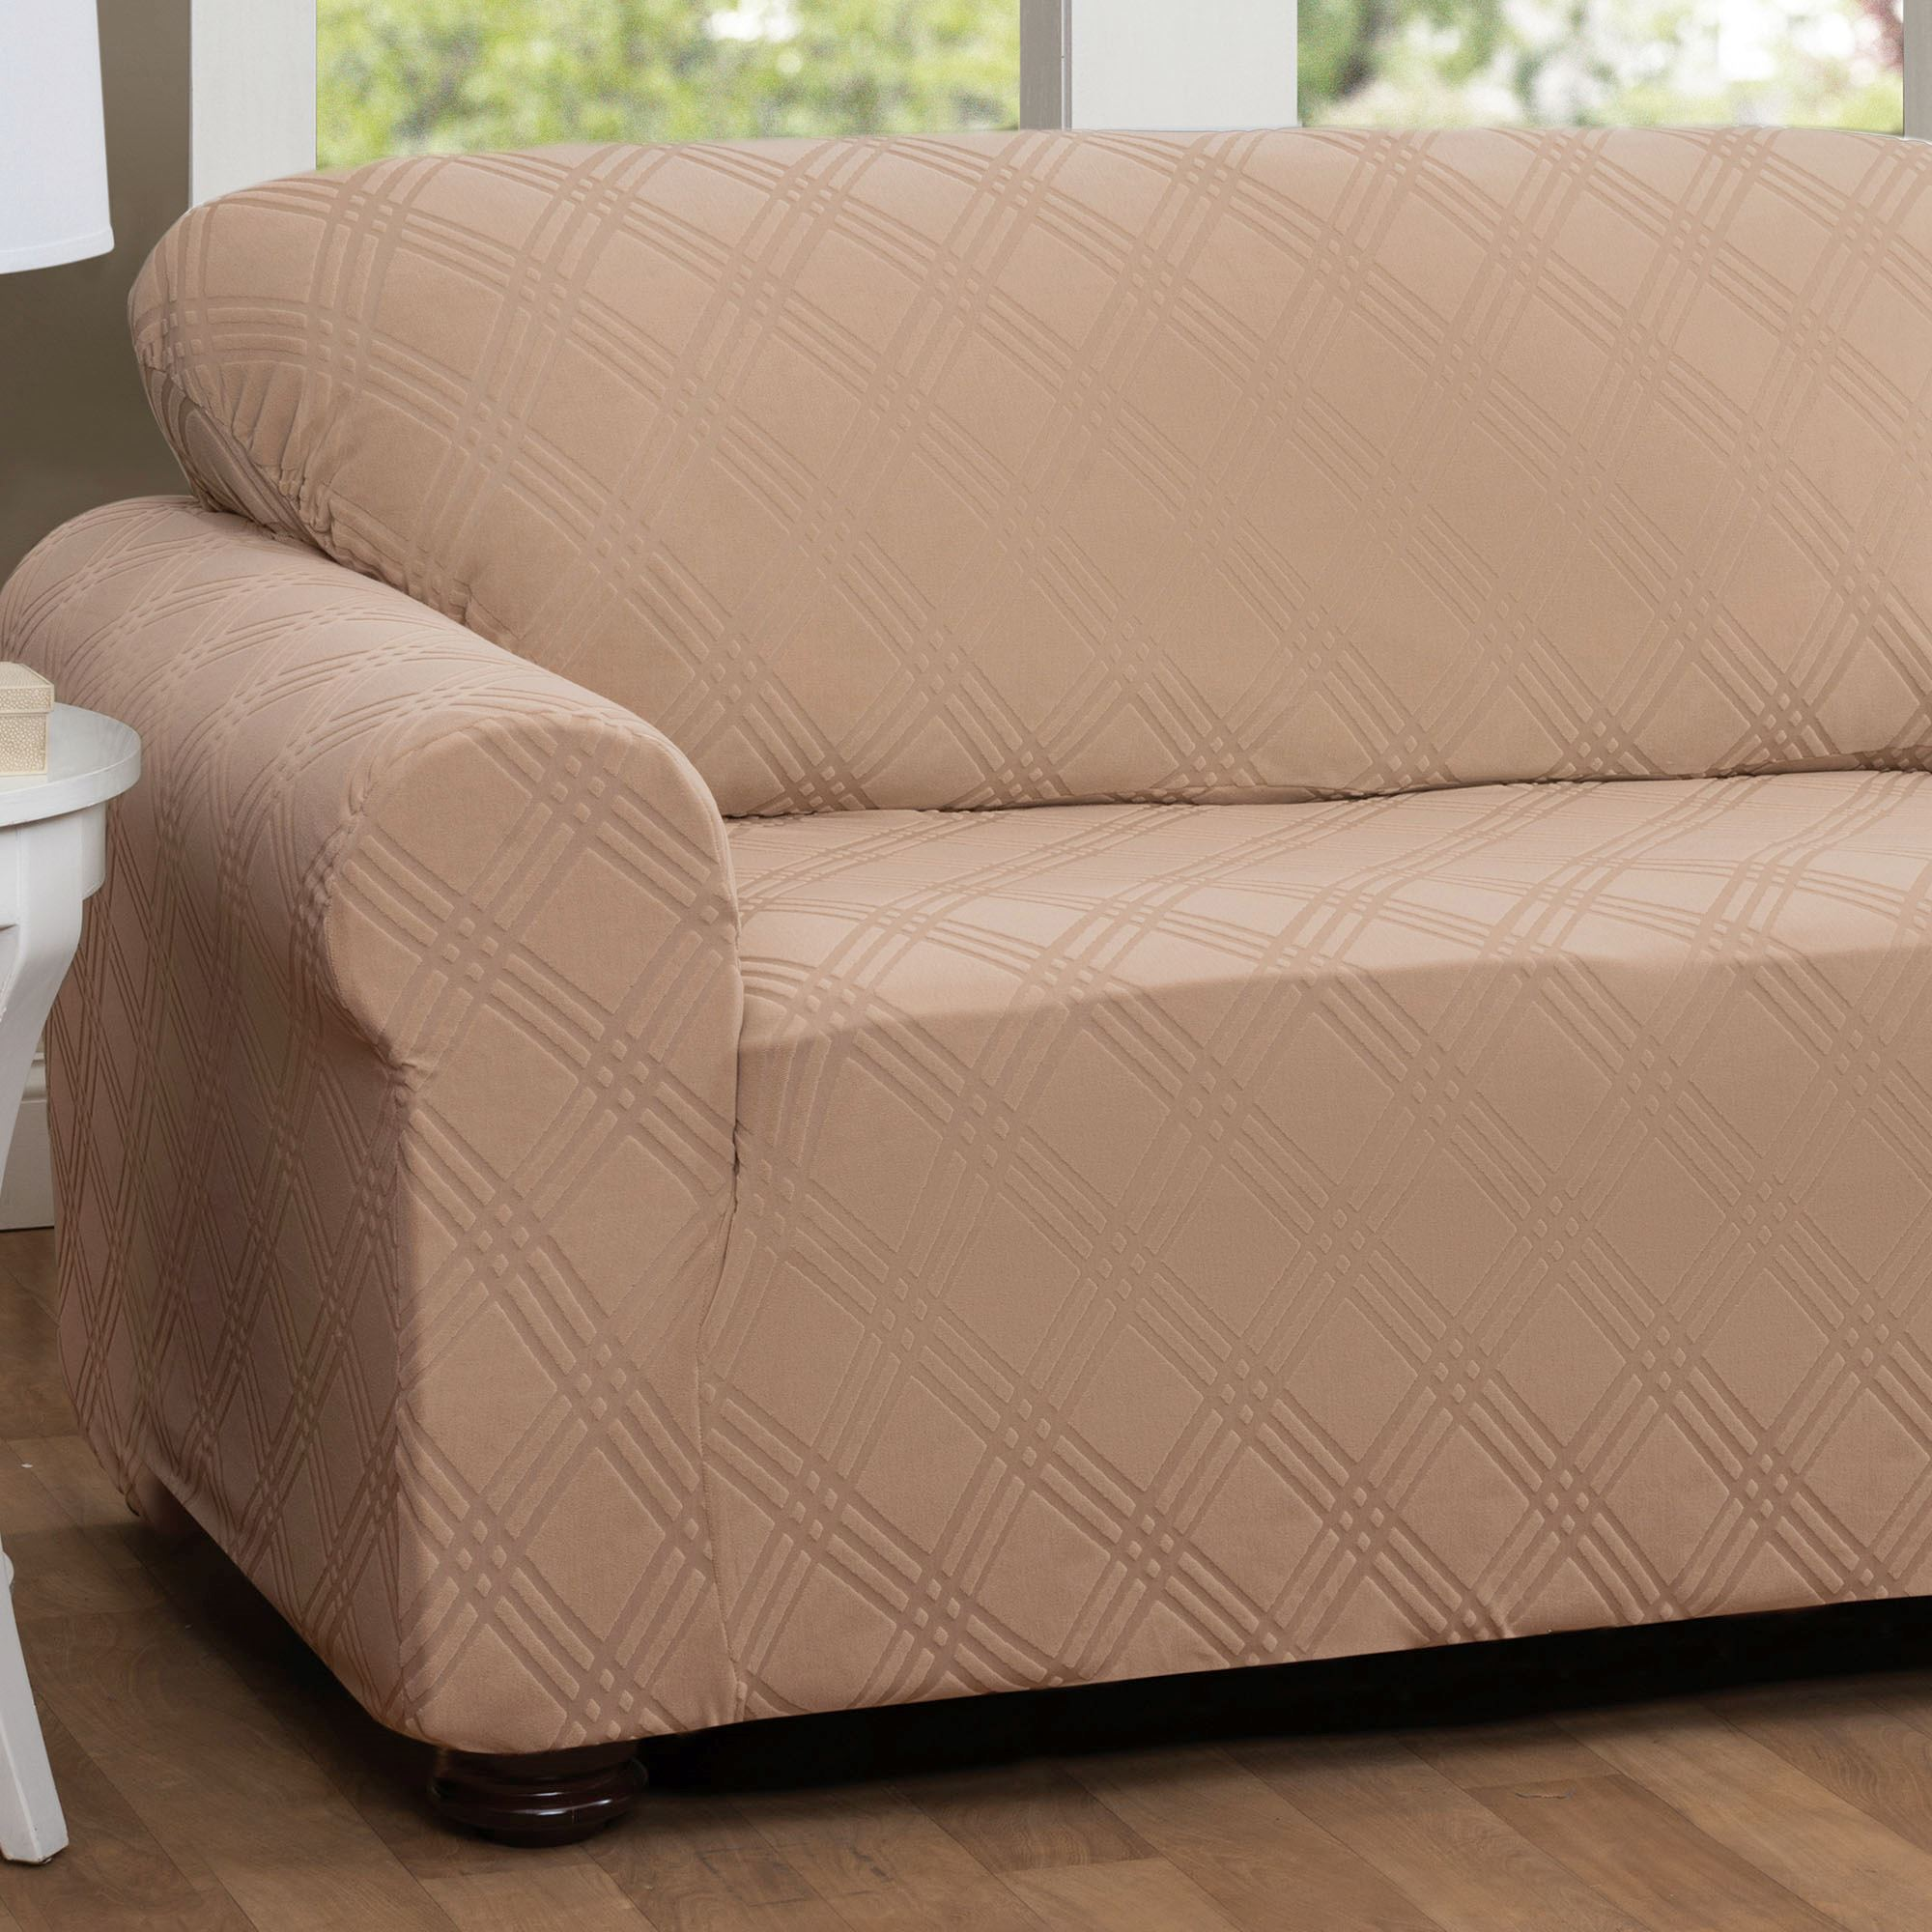 cover furniture full pet covers sectional sofa with size slipcover sofas sheets ikea of a pets drop waterproof couch how slipcovers stretch to leather for cheap set cloth